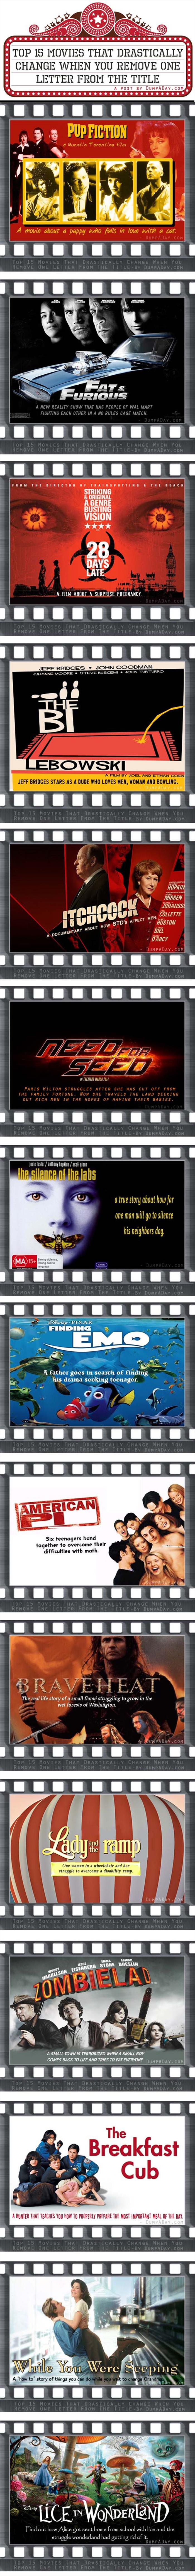 Top-15-Movies-That-Drastically-Change-When-You-Remove-One-Letter-From-The-Title